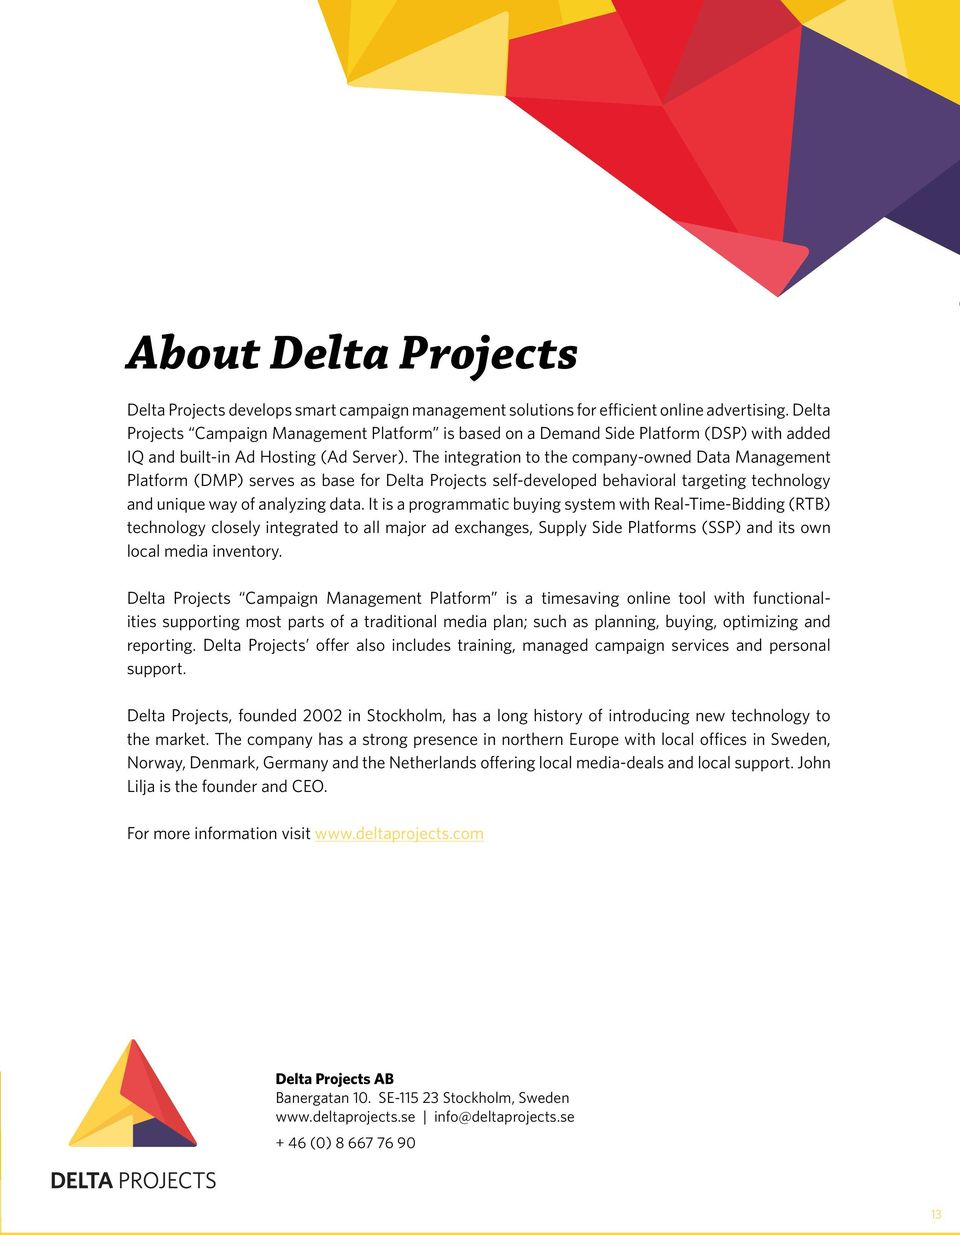 The integration to the company-owned Data Management Platform (DMP) serves as base for Delta Projects self-developed behavioral targeting technology and unique way of analyzing data.